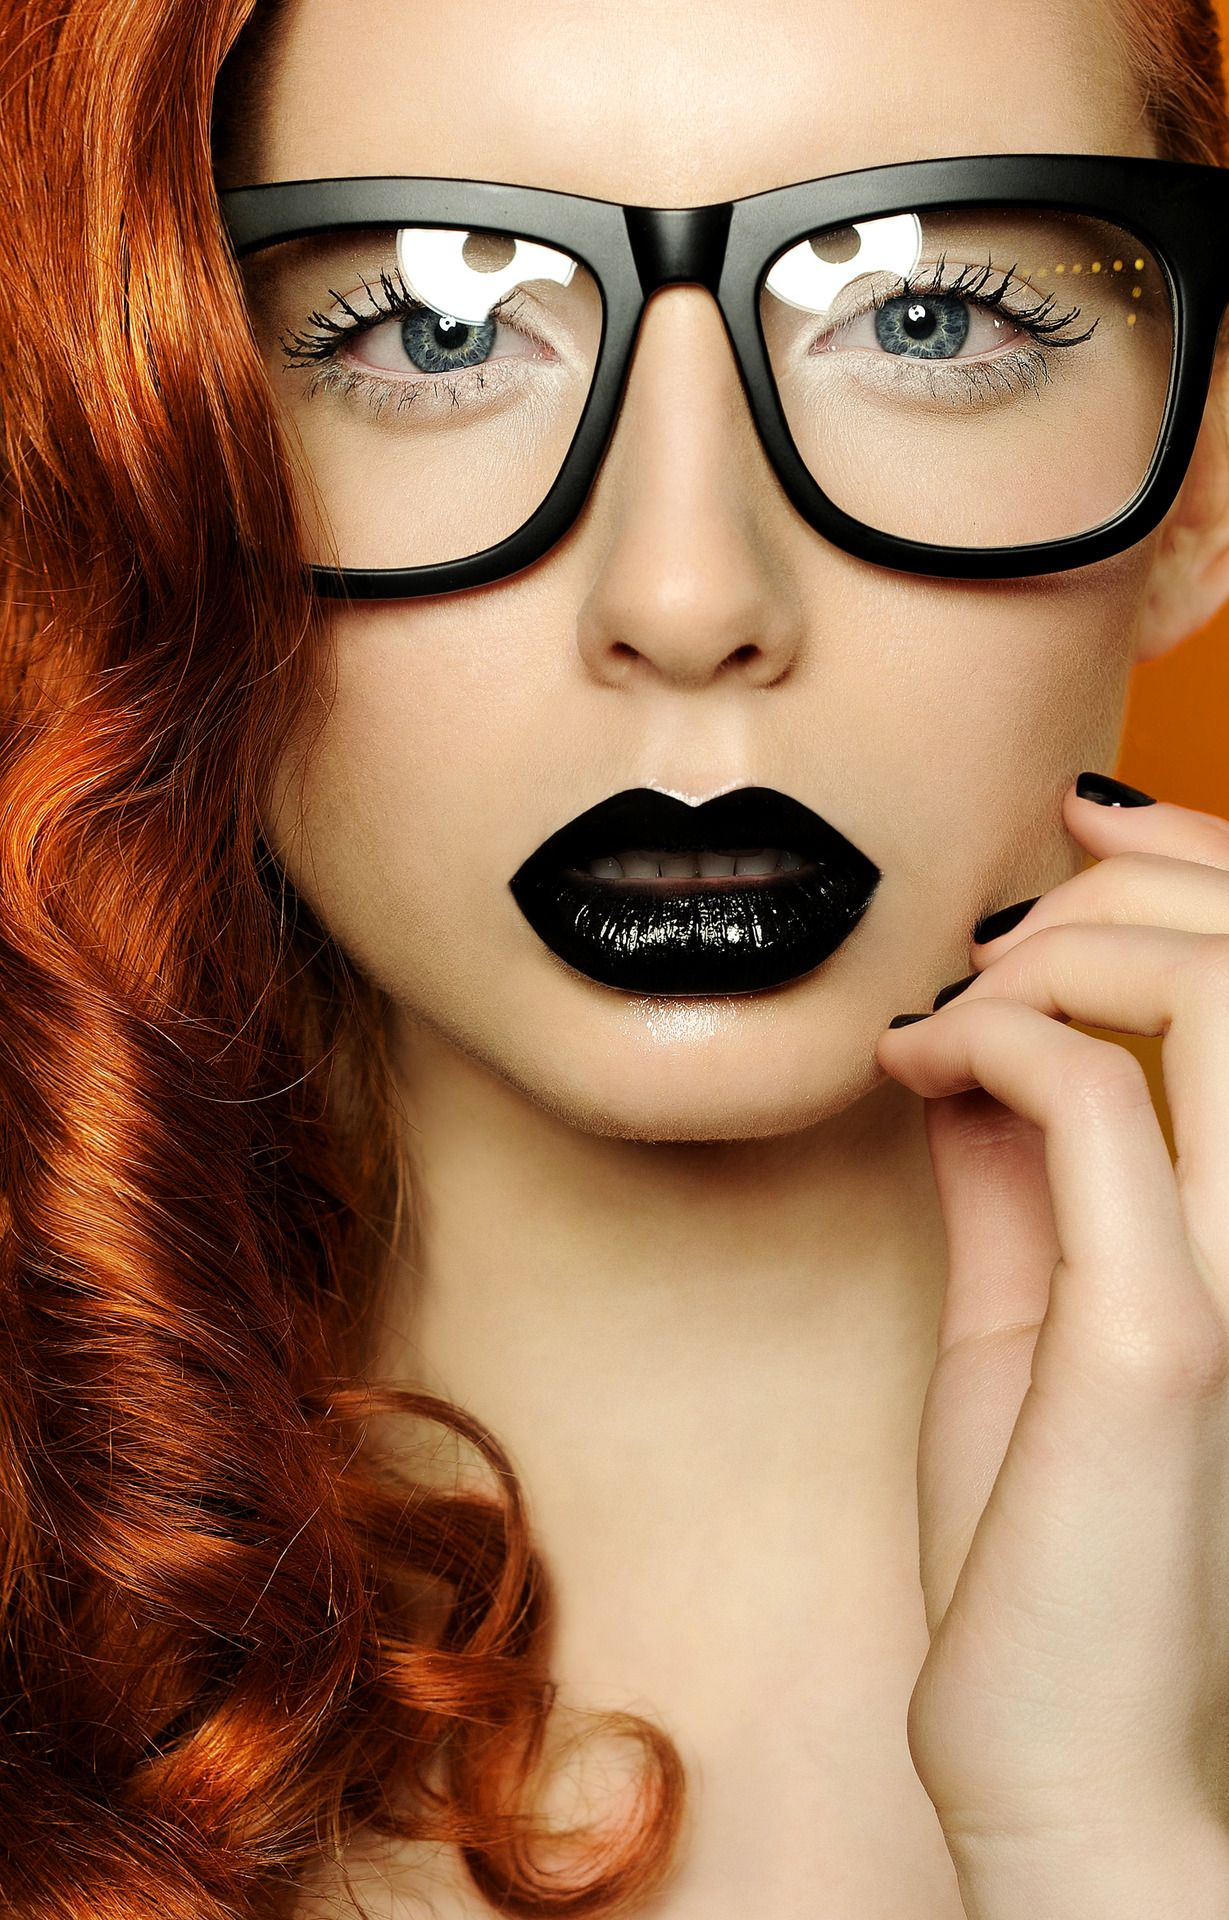 Black Rim Eyeglasses Lips Black Lipstick Ginger Hair